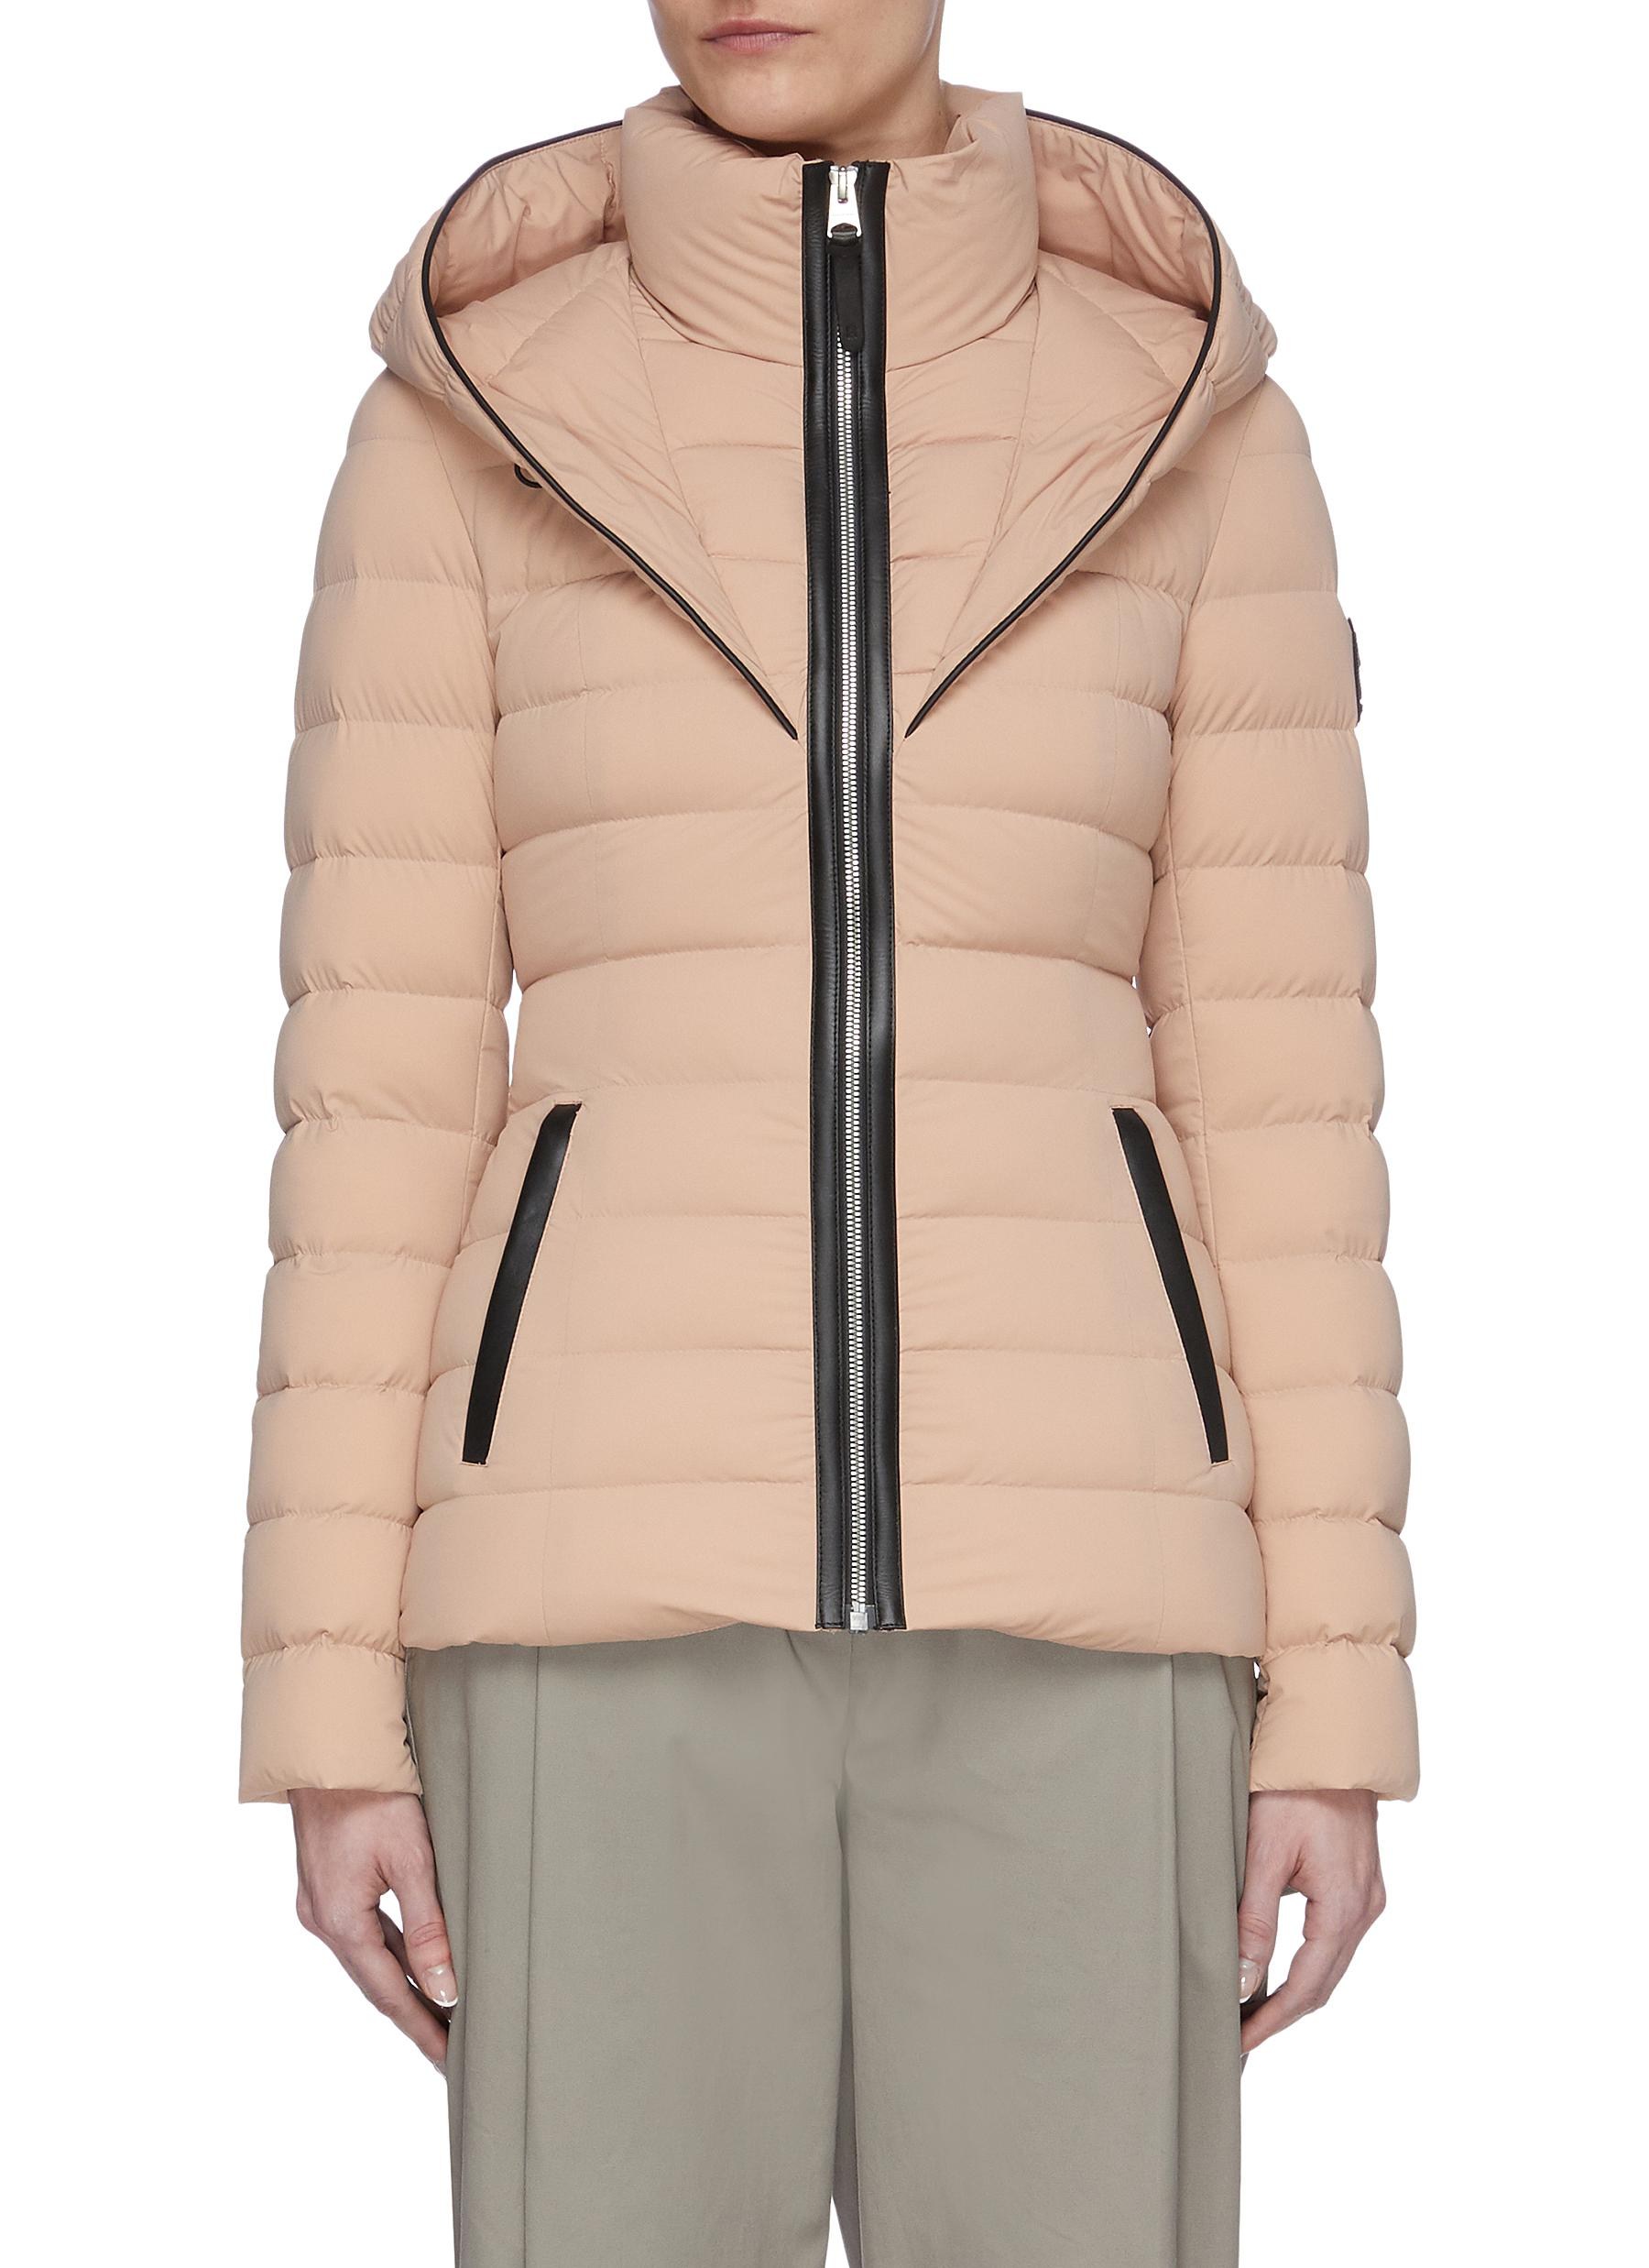 Buy Mackage Jackets 'Andrea' full zip puffer jacket